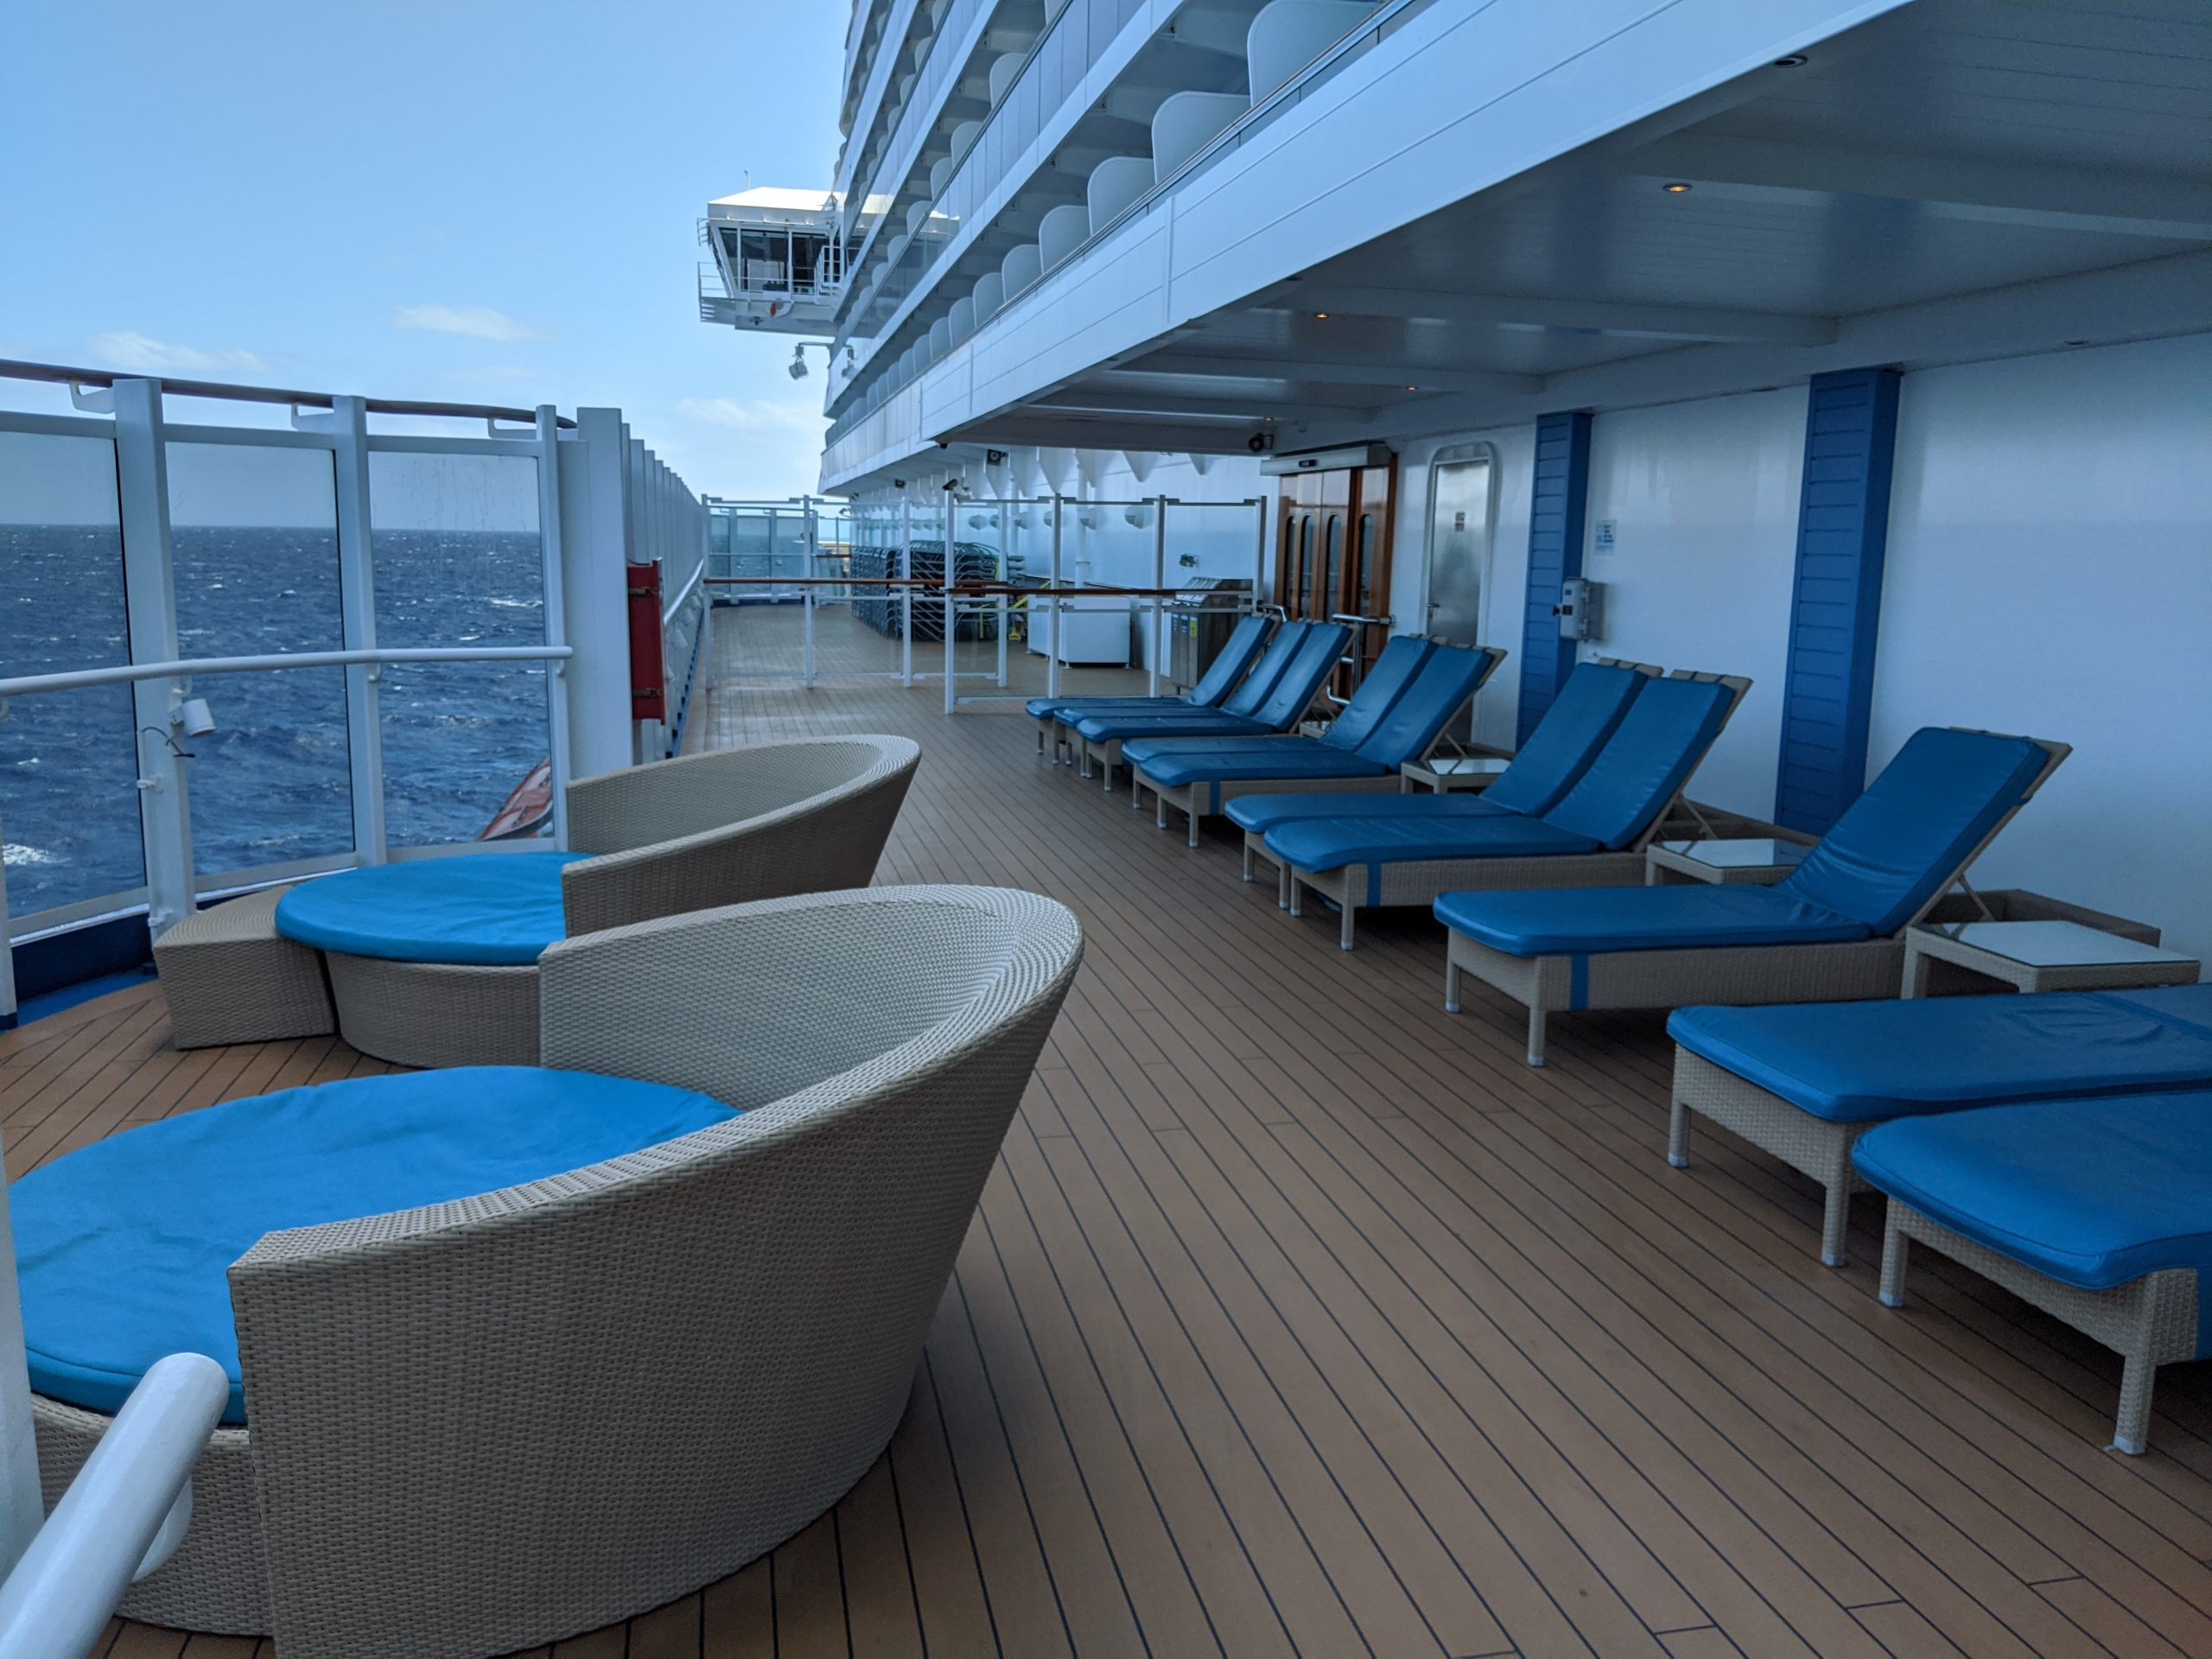 Look Back on our Pre-shutdown Carnival Horizon Cruise